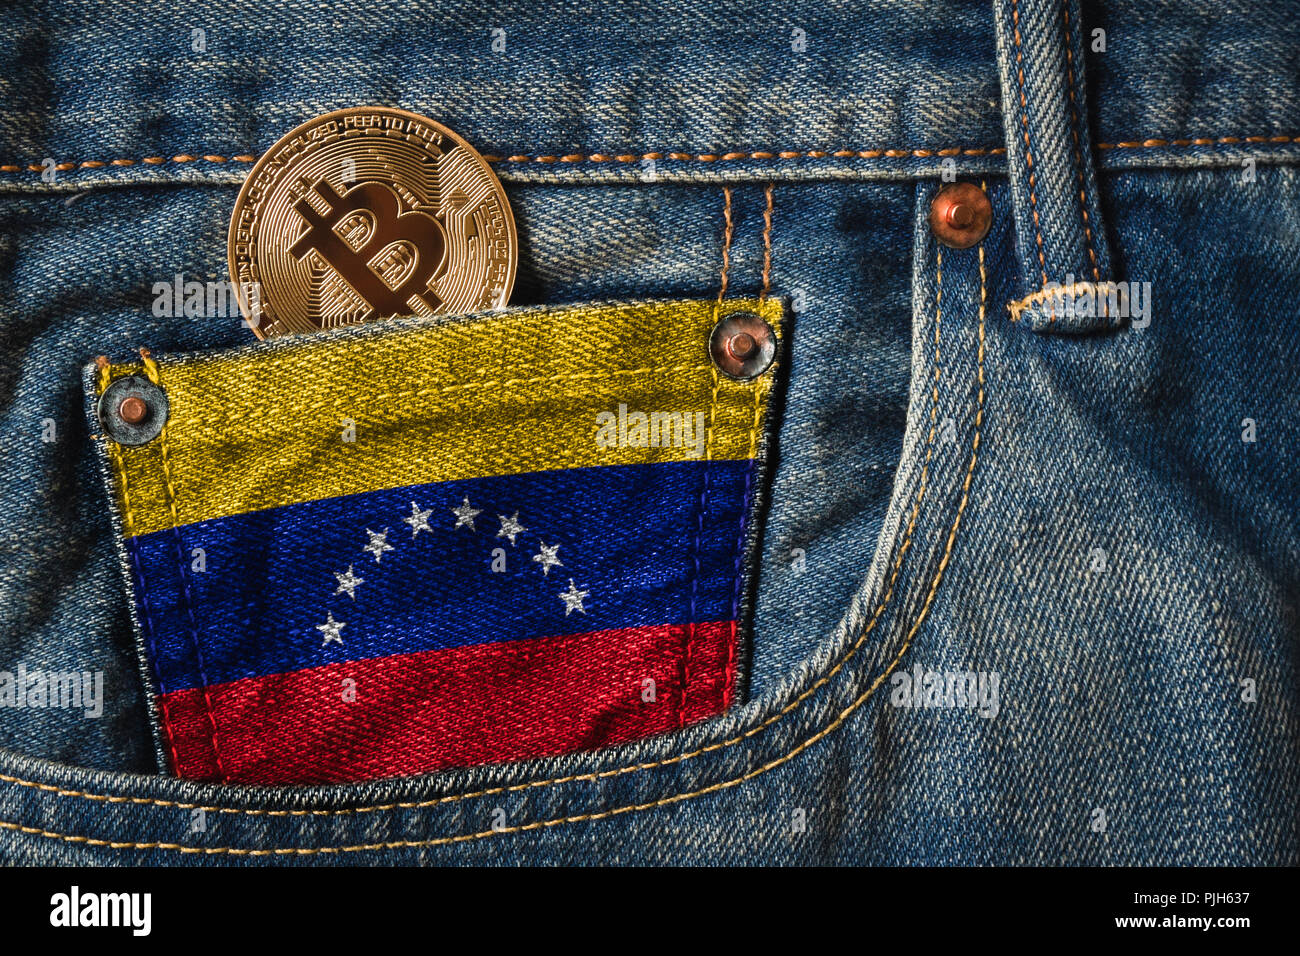 Golden BITCOIN (BTC) cryptocurrency in the pocket of jeans with the flag of Bolivarian Republic of Venezuela on Jeans Denim Texture. - Stock Image